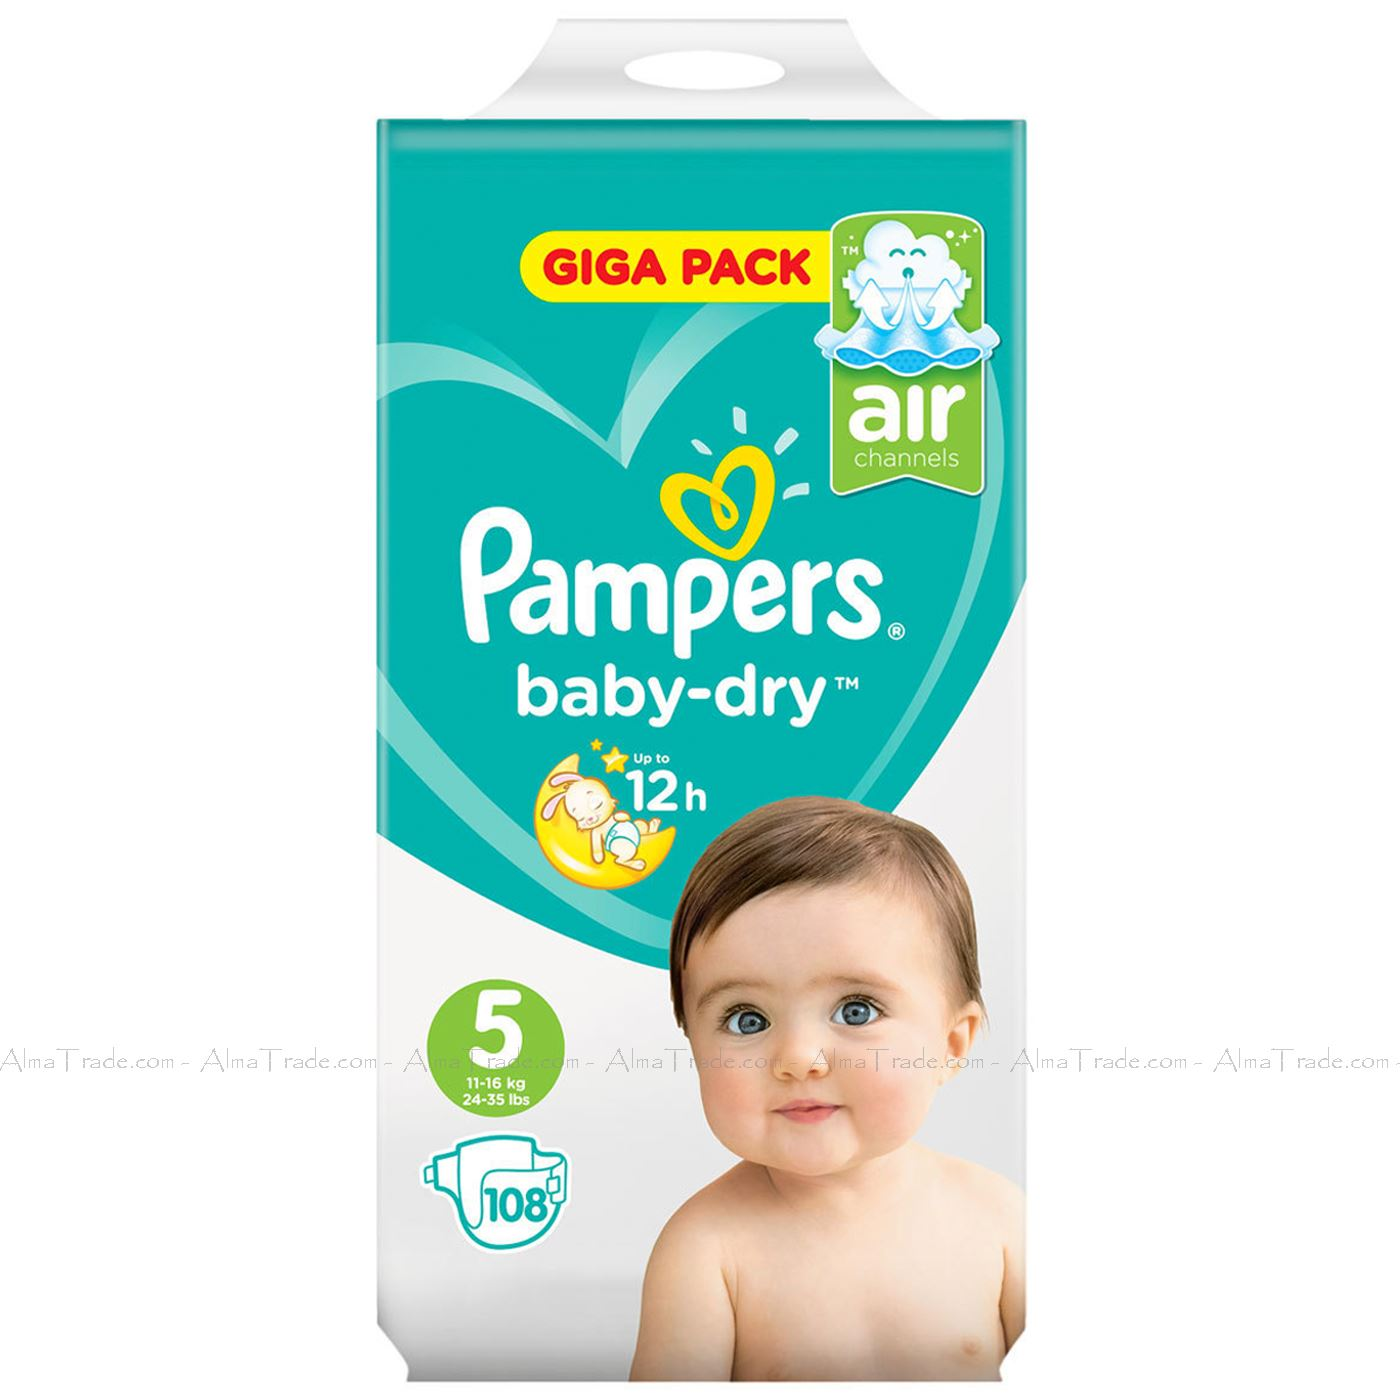 Pampers-Baby-Dry-Nappy-Air-Channels-Nappies-Size-1-2-3-4-5-6-7-Jumbo-Giga-Pack thumbnail 27